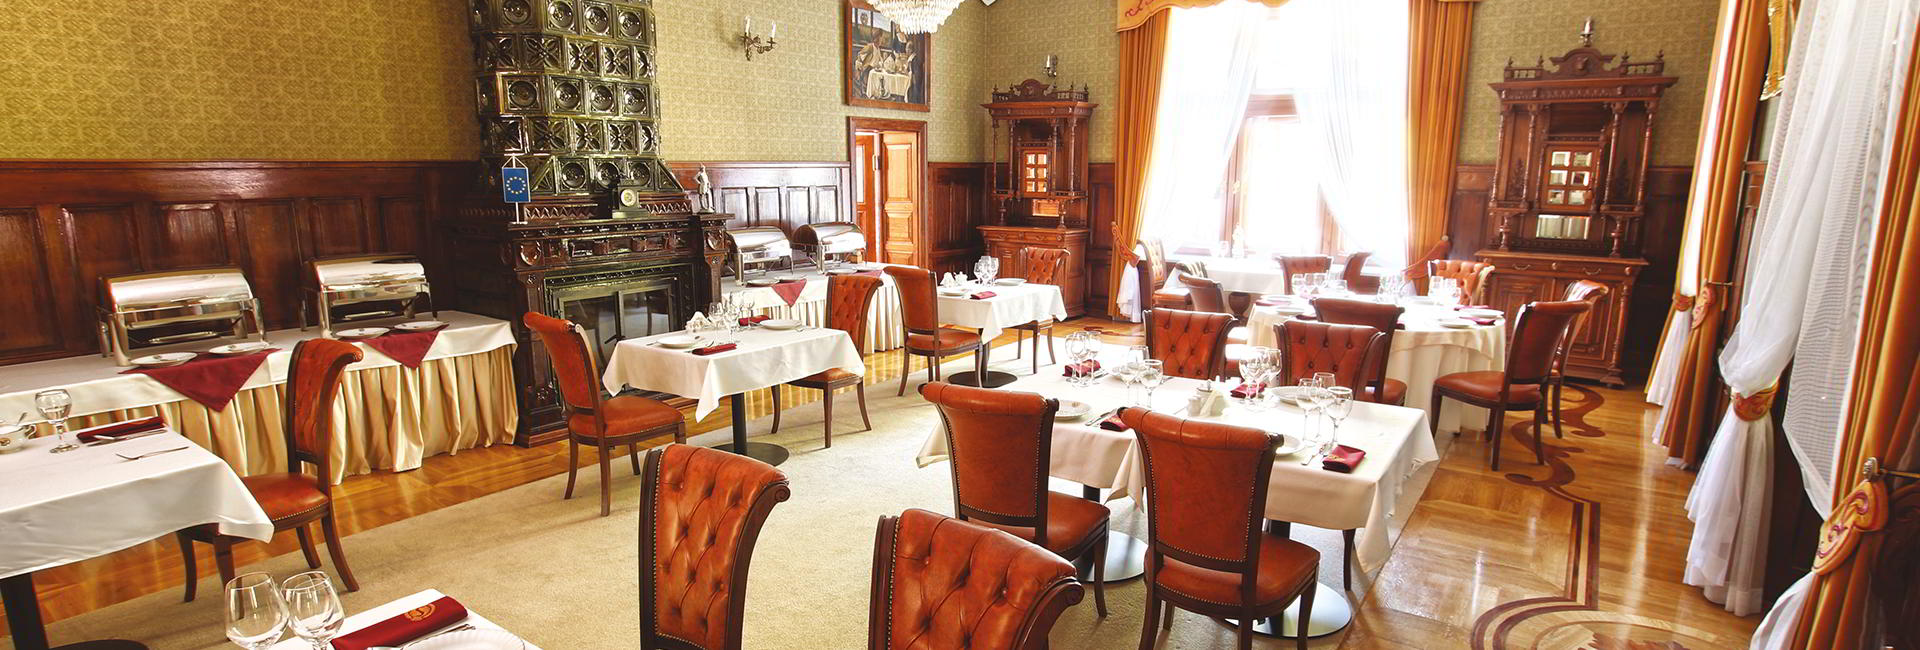 Restaurant at Sulislaw Palace in Grodkow near Wroclaw, Poland